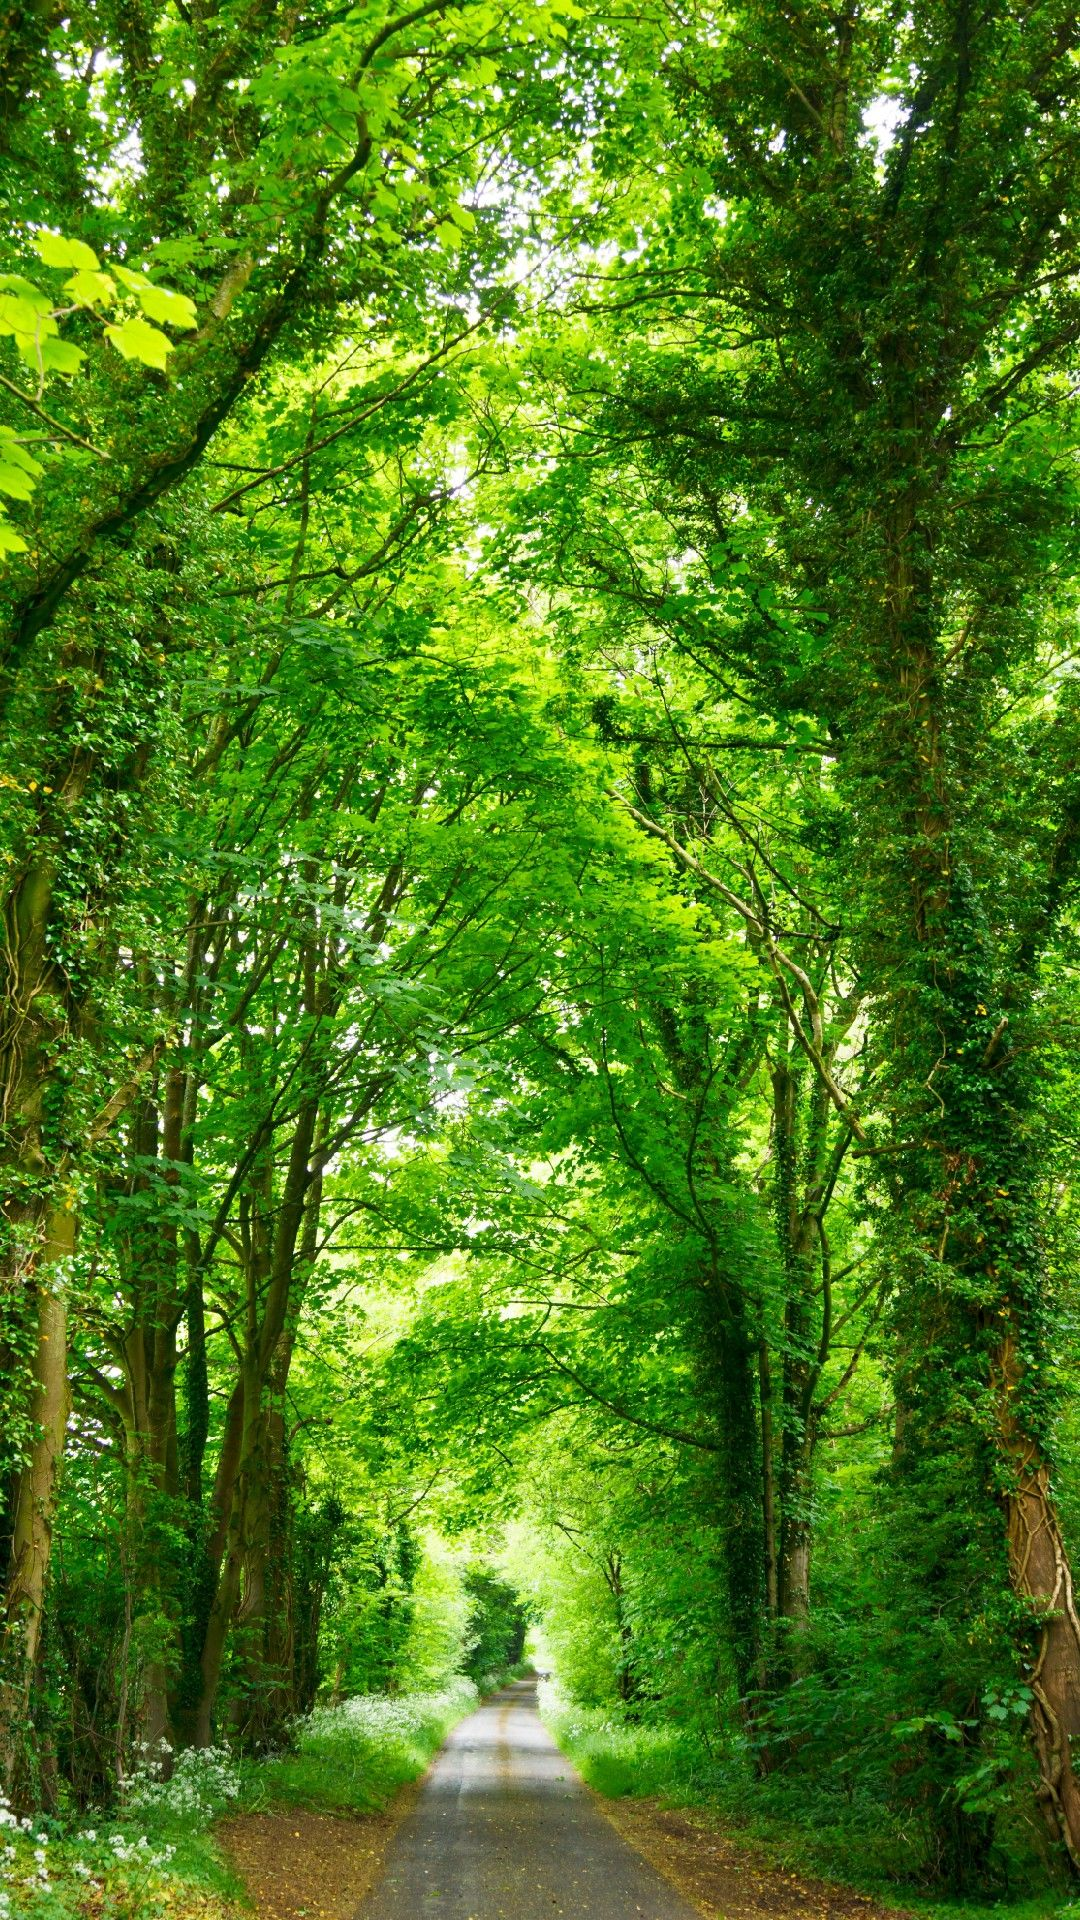 Deep Green Trees Phone Wallpaper Lockscreen Hd 4k Android Ios Nature Pictures Beautiful Landscapes Nature Images